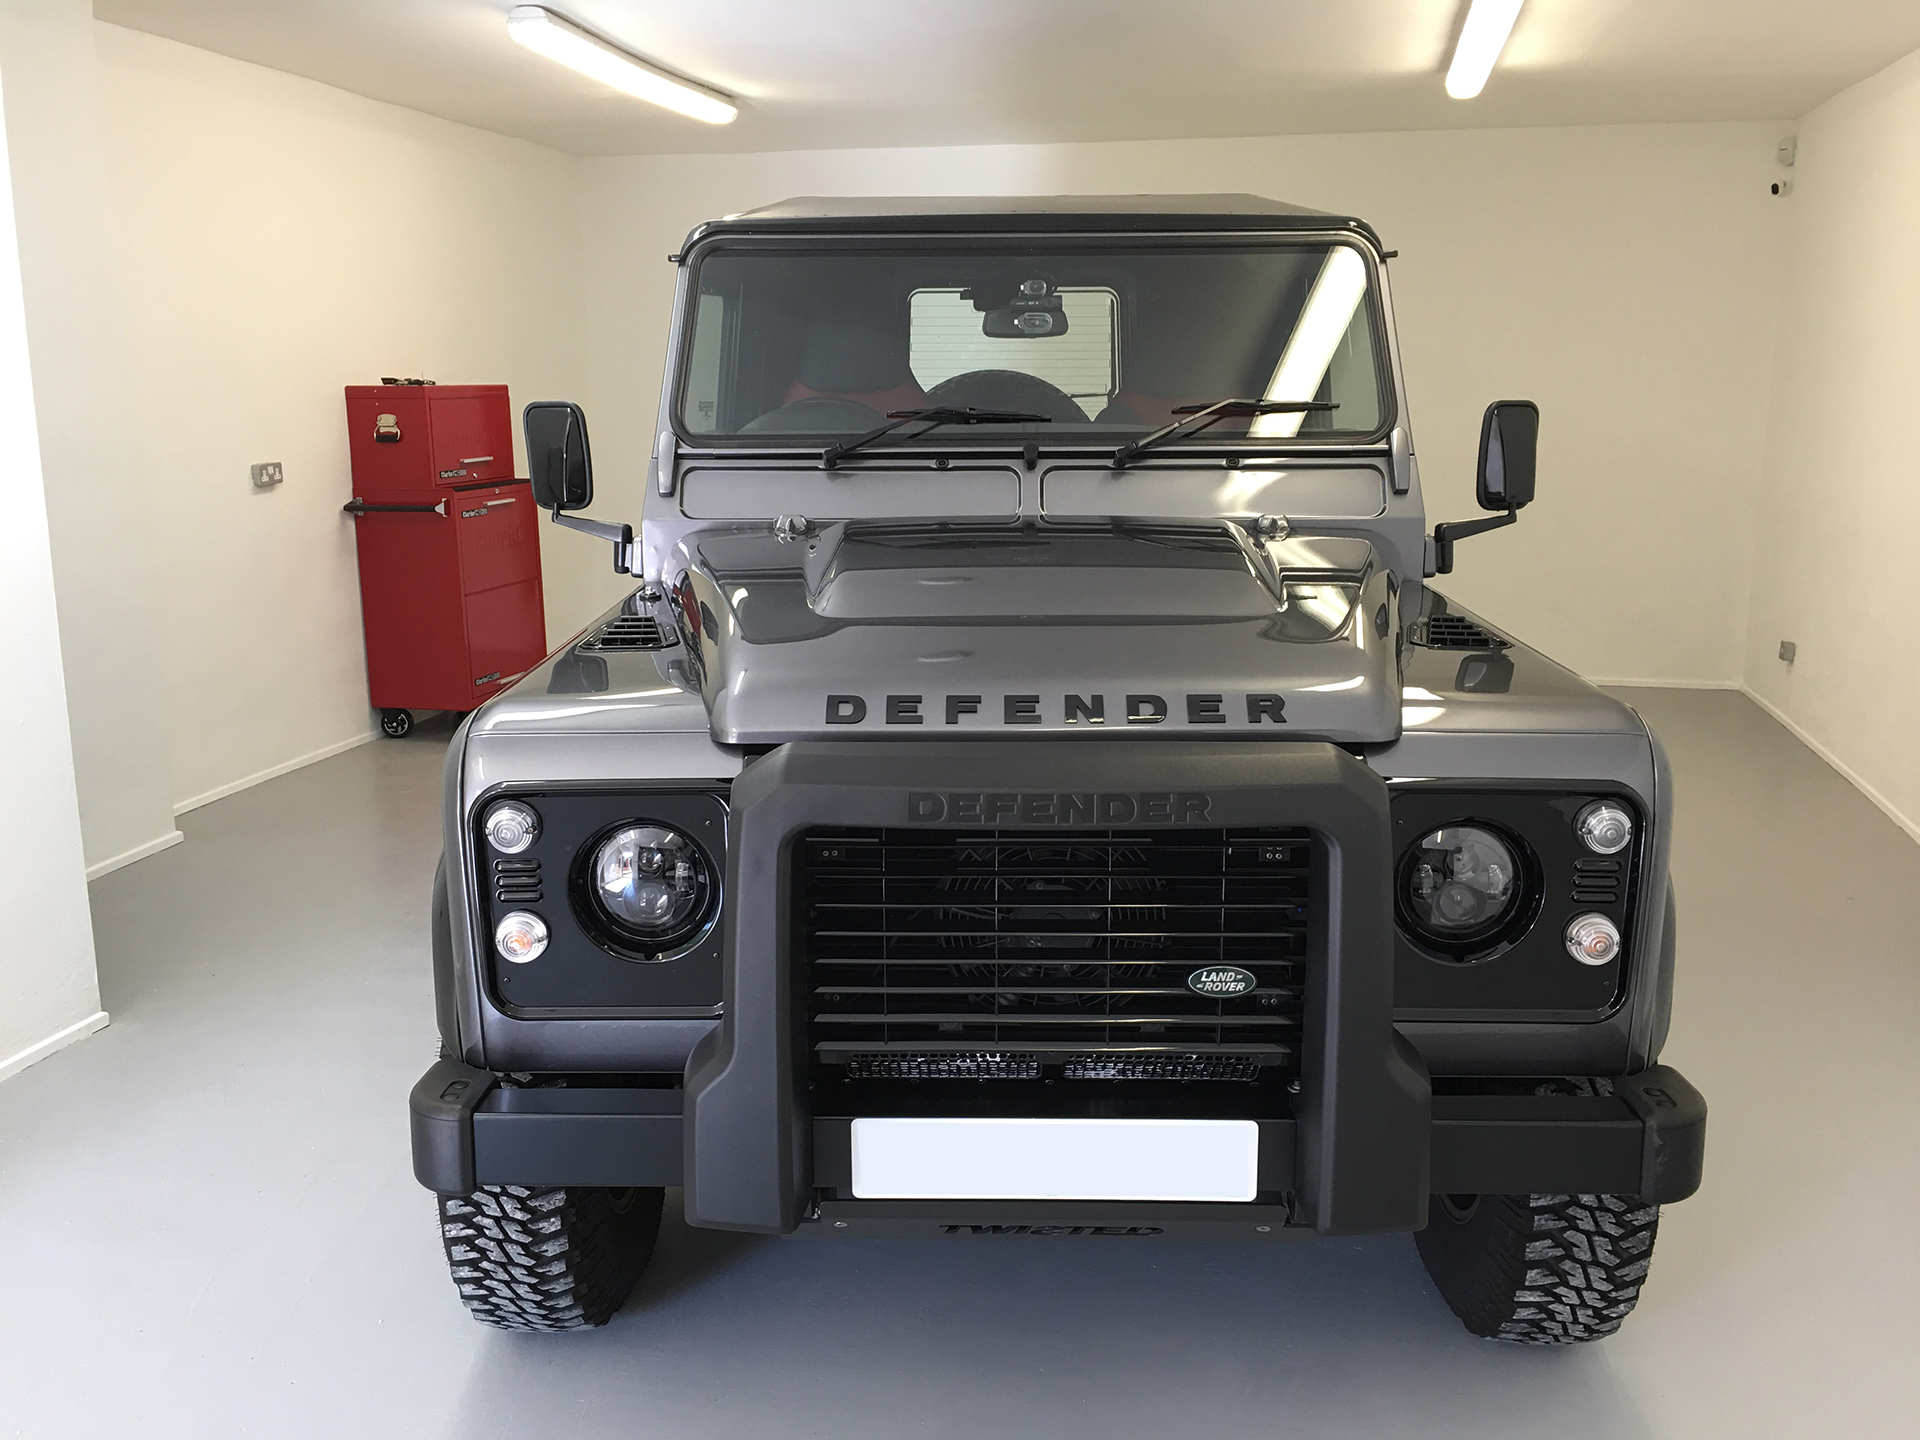 Land Rover Defender Security Specialists - TTW Installations